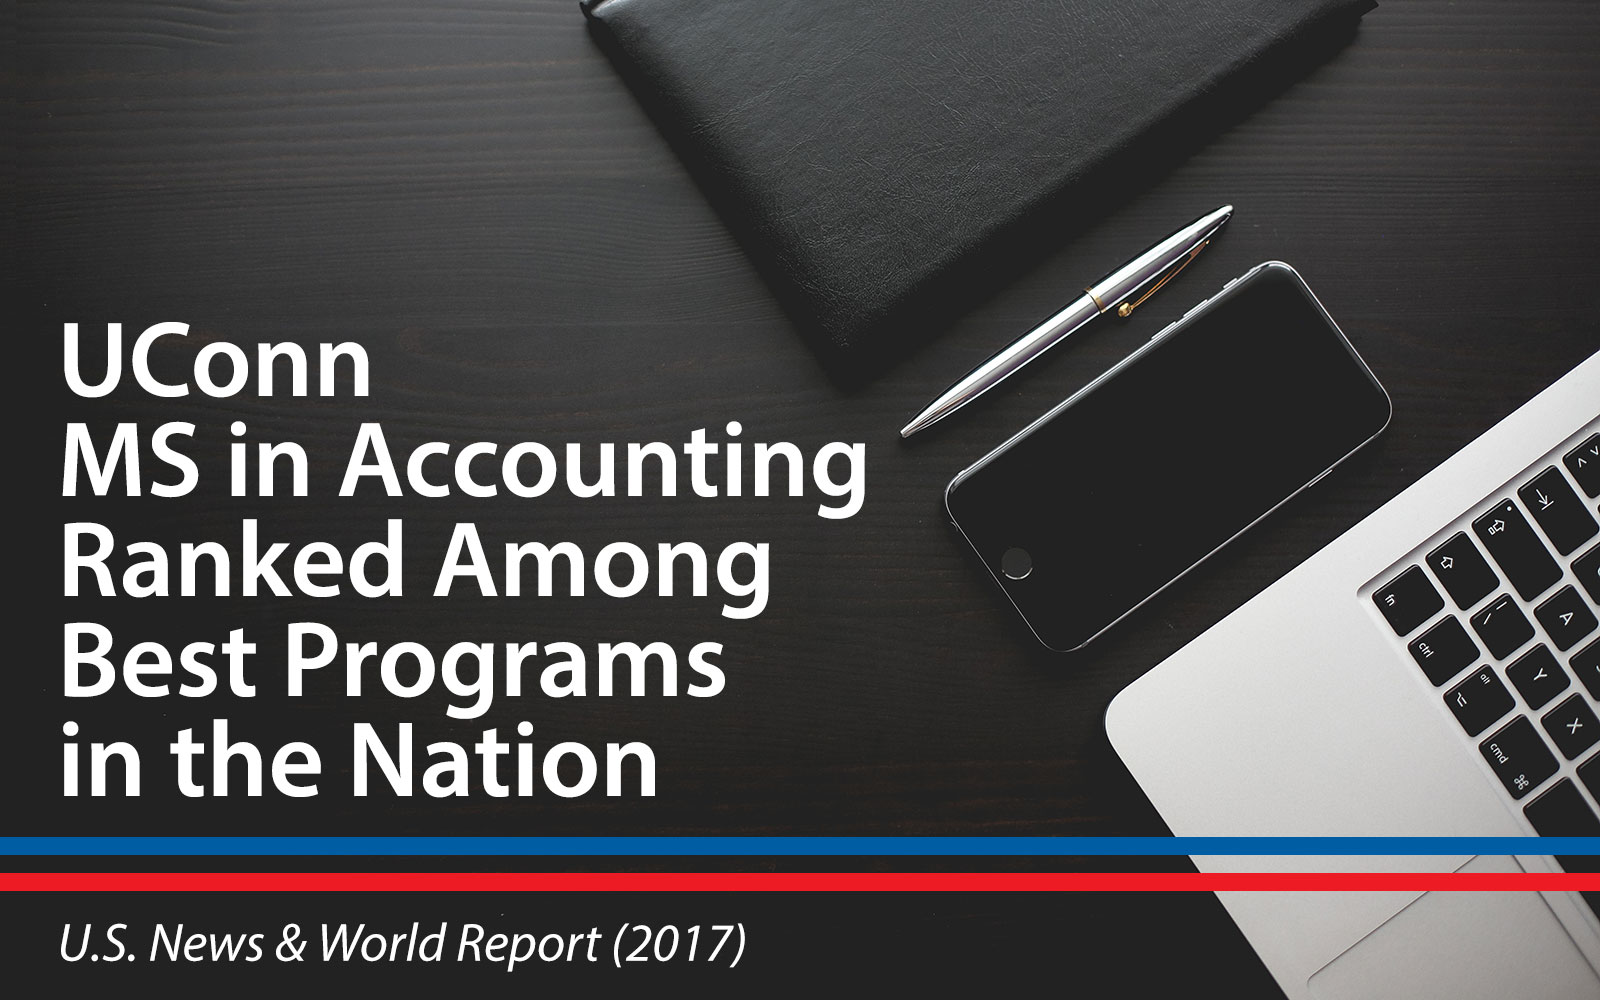 UConn MS in Accounting ranked Among Best Programs in the Nation US News and World Report 2017